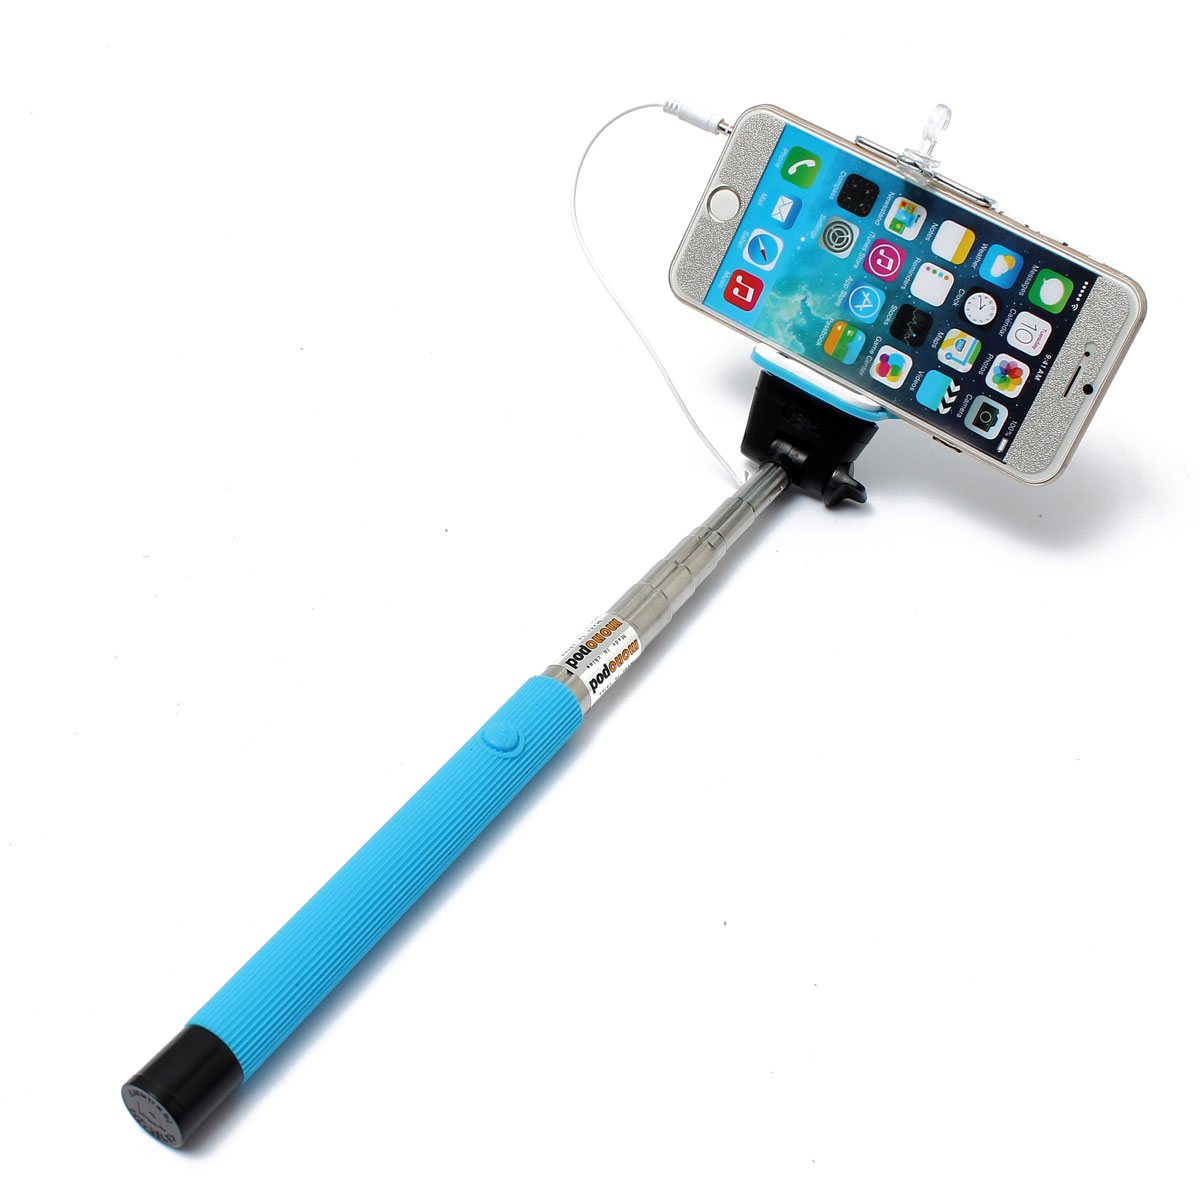 extendable wired remote shutter handheld selfie stick monopod for iphone ipod ebay. Black Bedroom Furniture Sets. Home Design Ideas